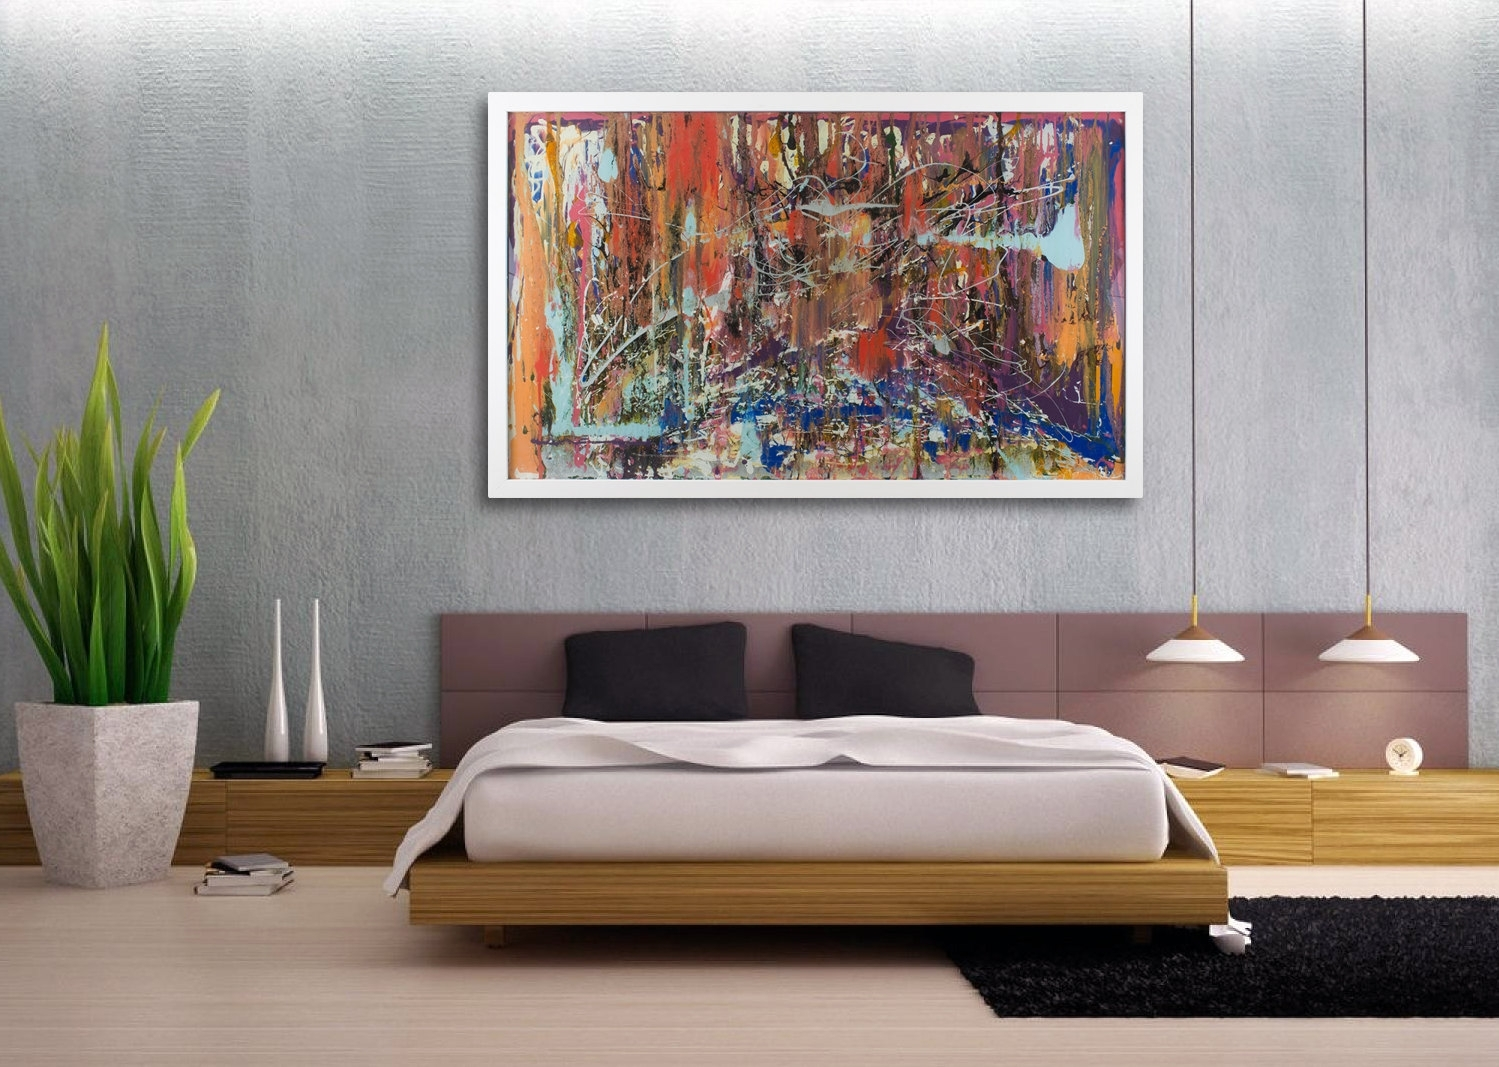 Expensive Large Canvas Wall Art Bedroom — Joanne Russo Homesjoanne Intended For Most Recently Released Large Canvas Wall Art (View 11 of 15)